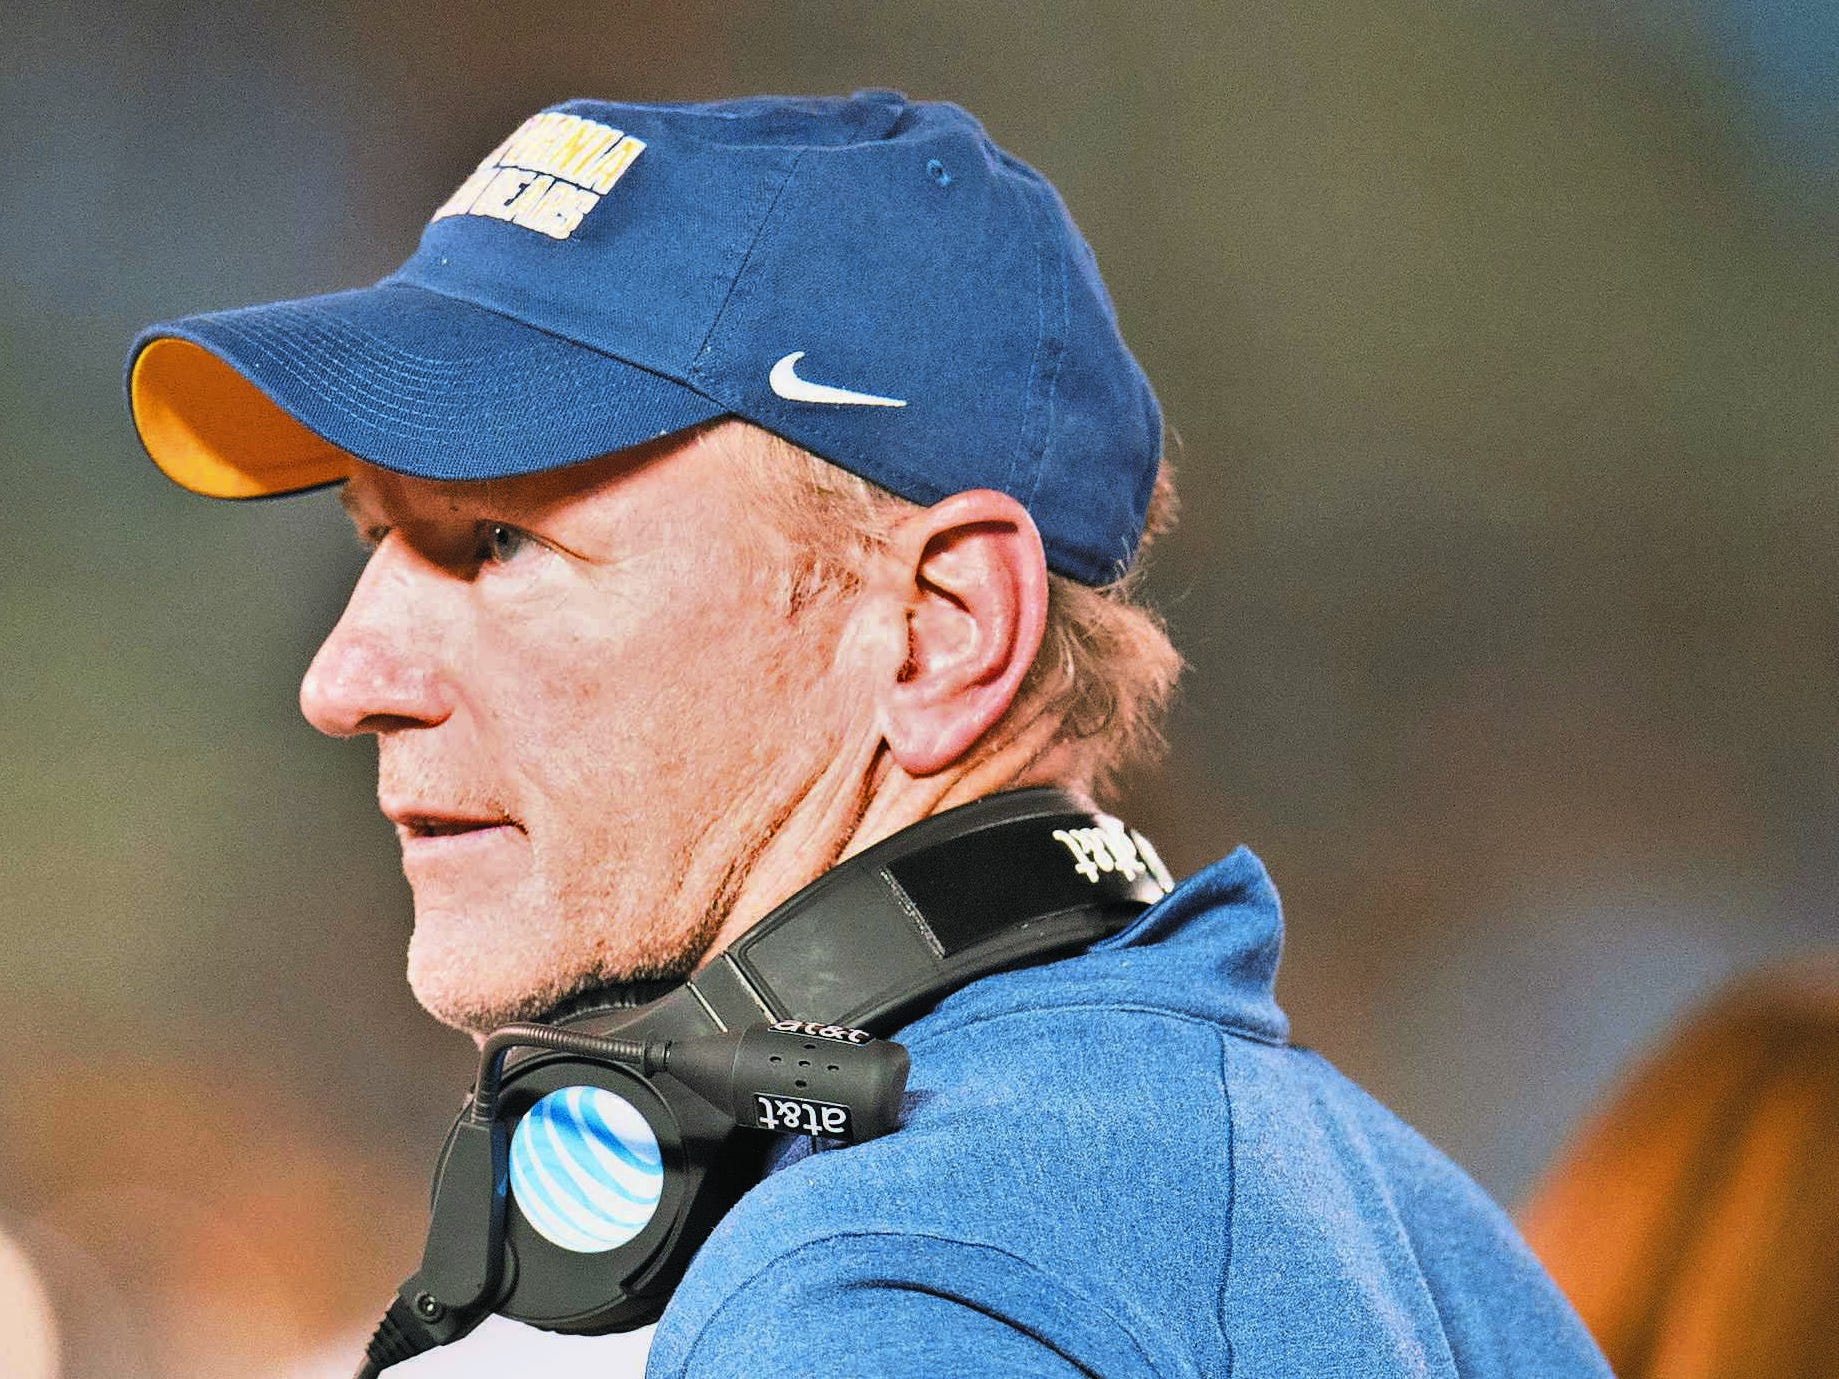 MTSU offensive coordinator Tony Franklin during his time at Cal